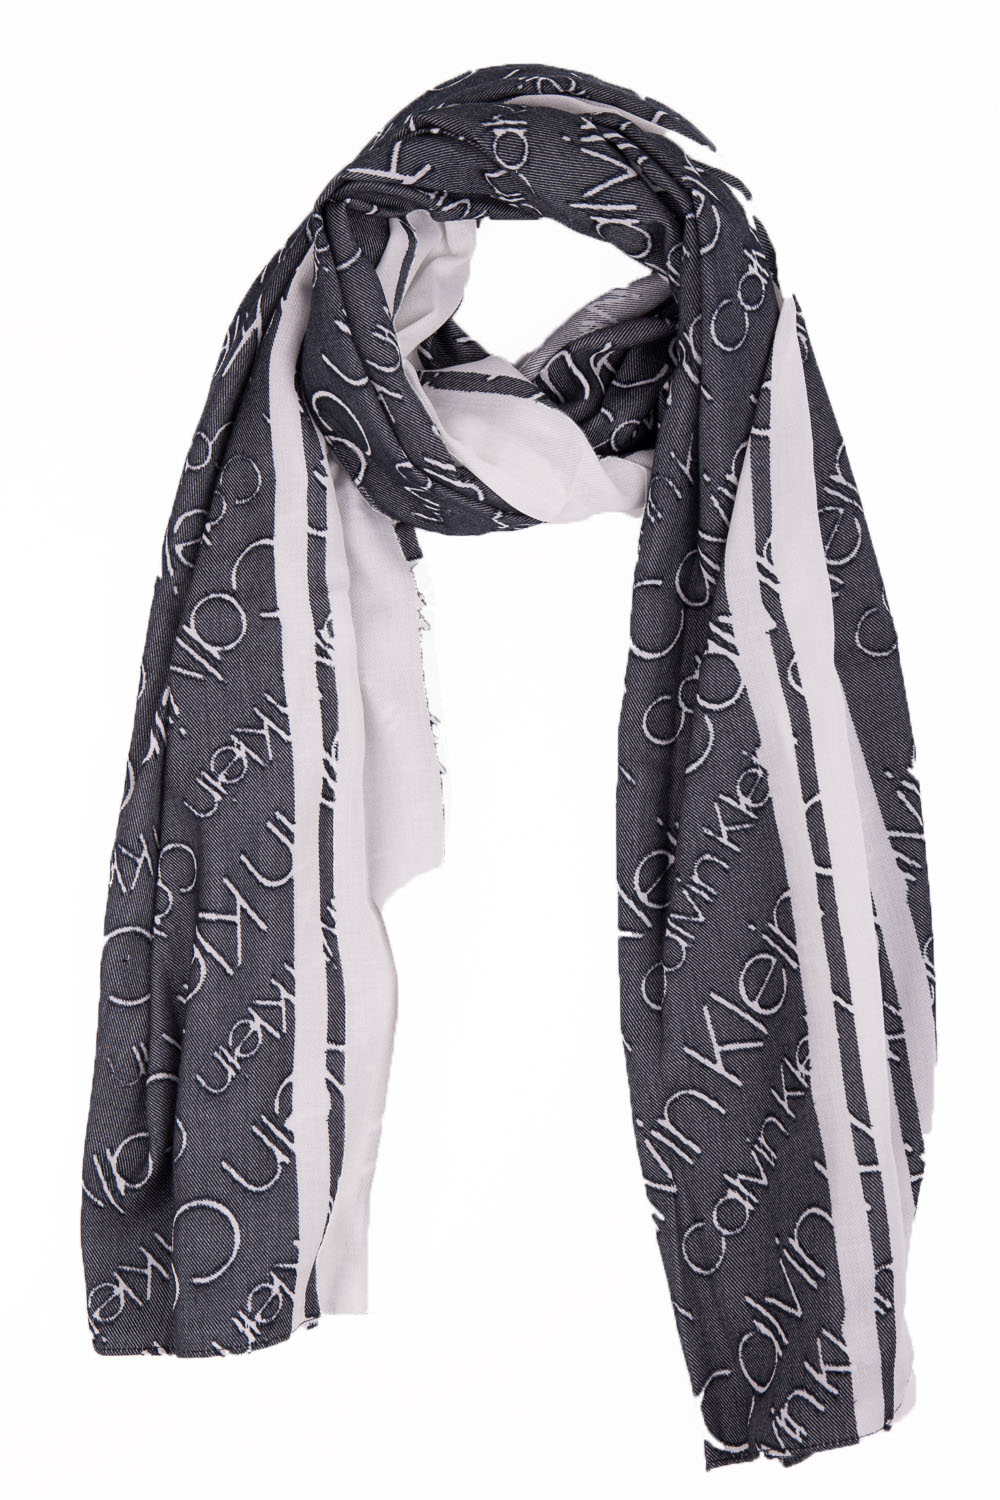 857d8a6d7a Calvin Klein black and white double-sided Burn Out scarf - Scarves ...